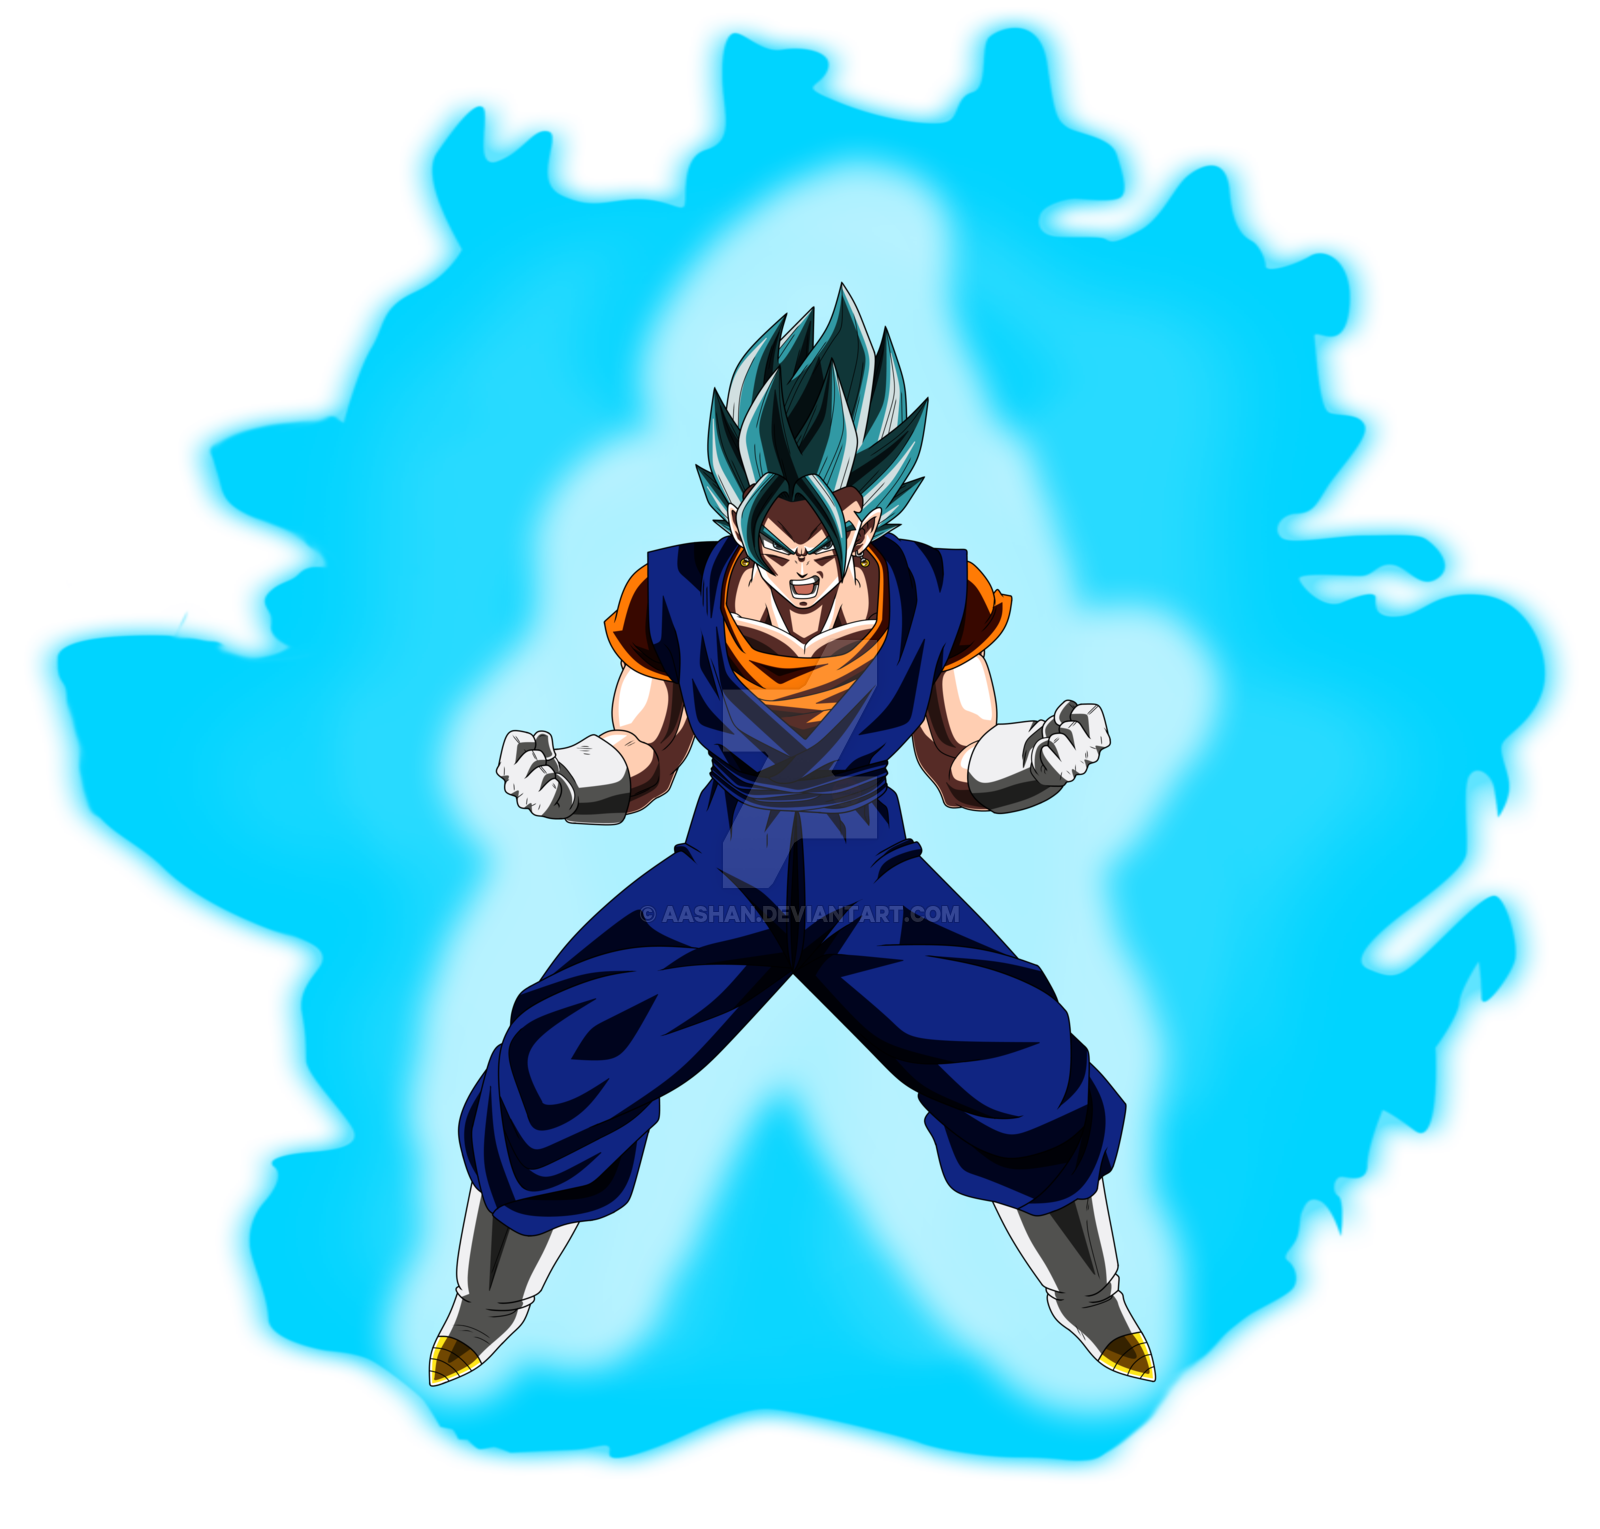 vegito super saiyan blue powering up colored with  by aashan dapvbli